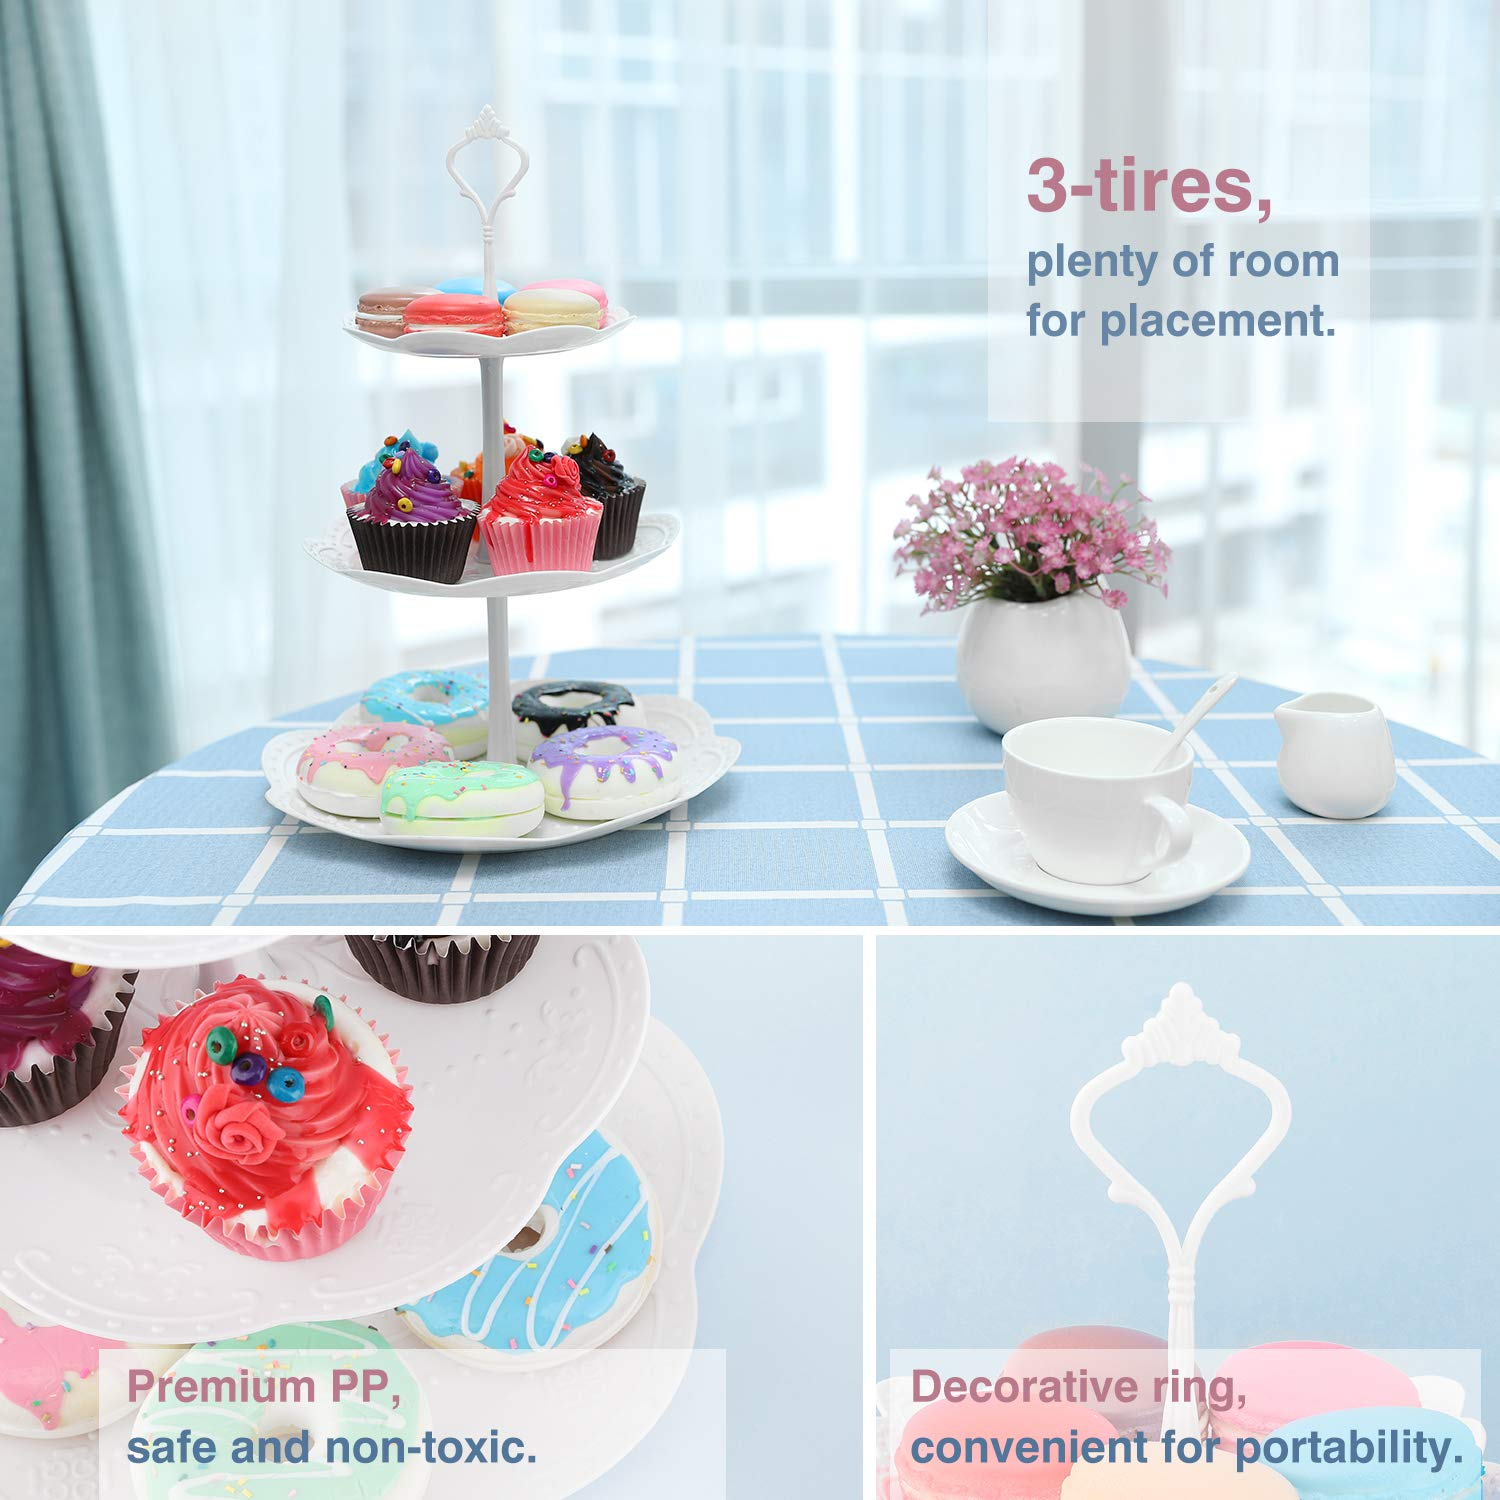 Fruit Desserts Cupcake Candy Buffet Plastic Round Plate Stand Serving Platter Display Tree Tower Stand for Wedding Home Birthday Festival Party Nuovoware 3-Tier Cake Stand White 3 Tier Round